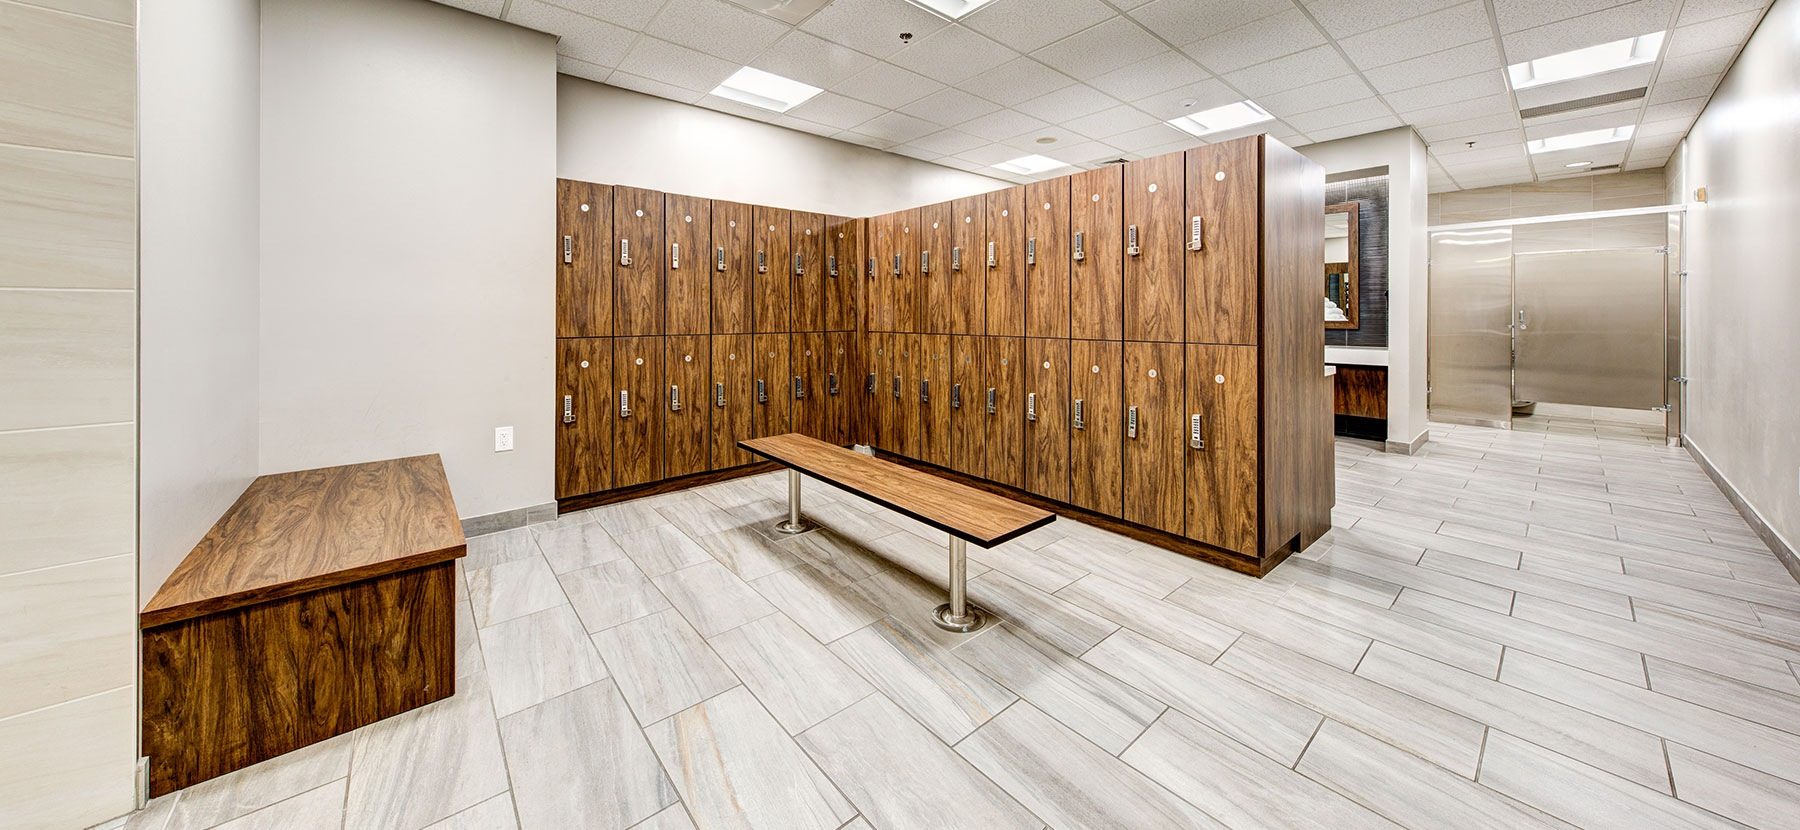 300 West Sixth Office Wellness Center Gym Lockers Group 3 Image 7